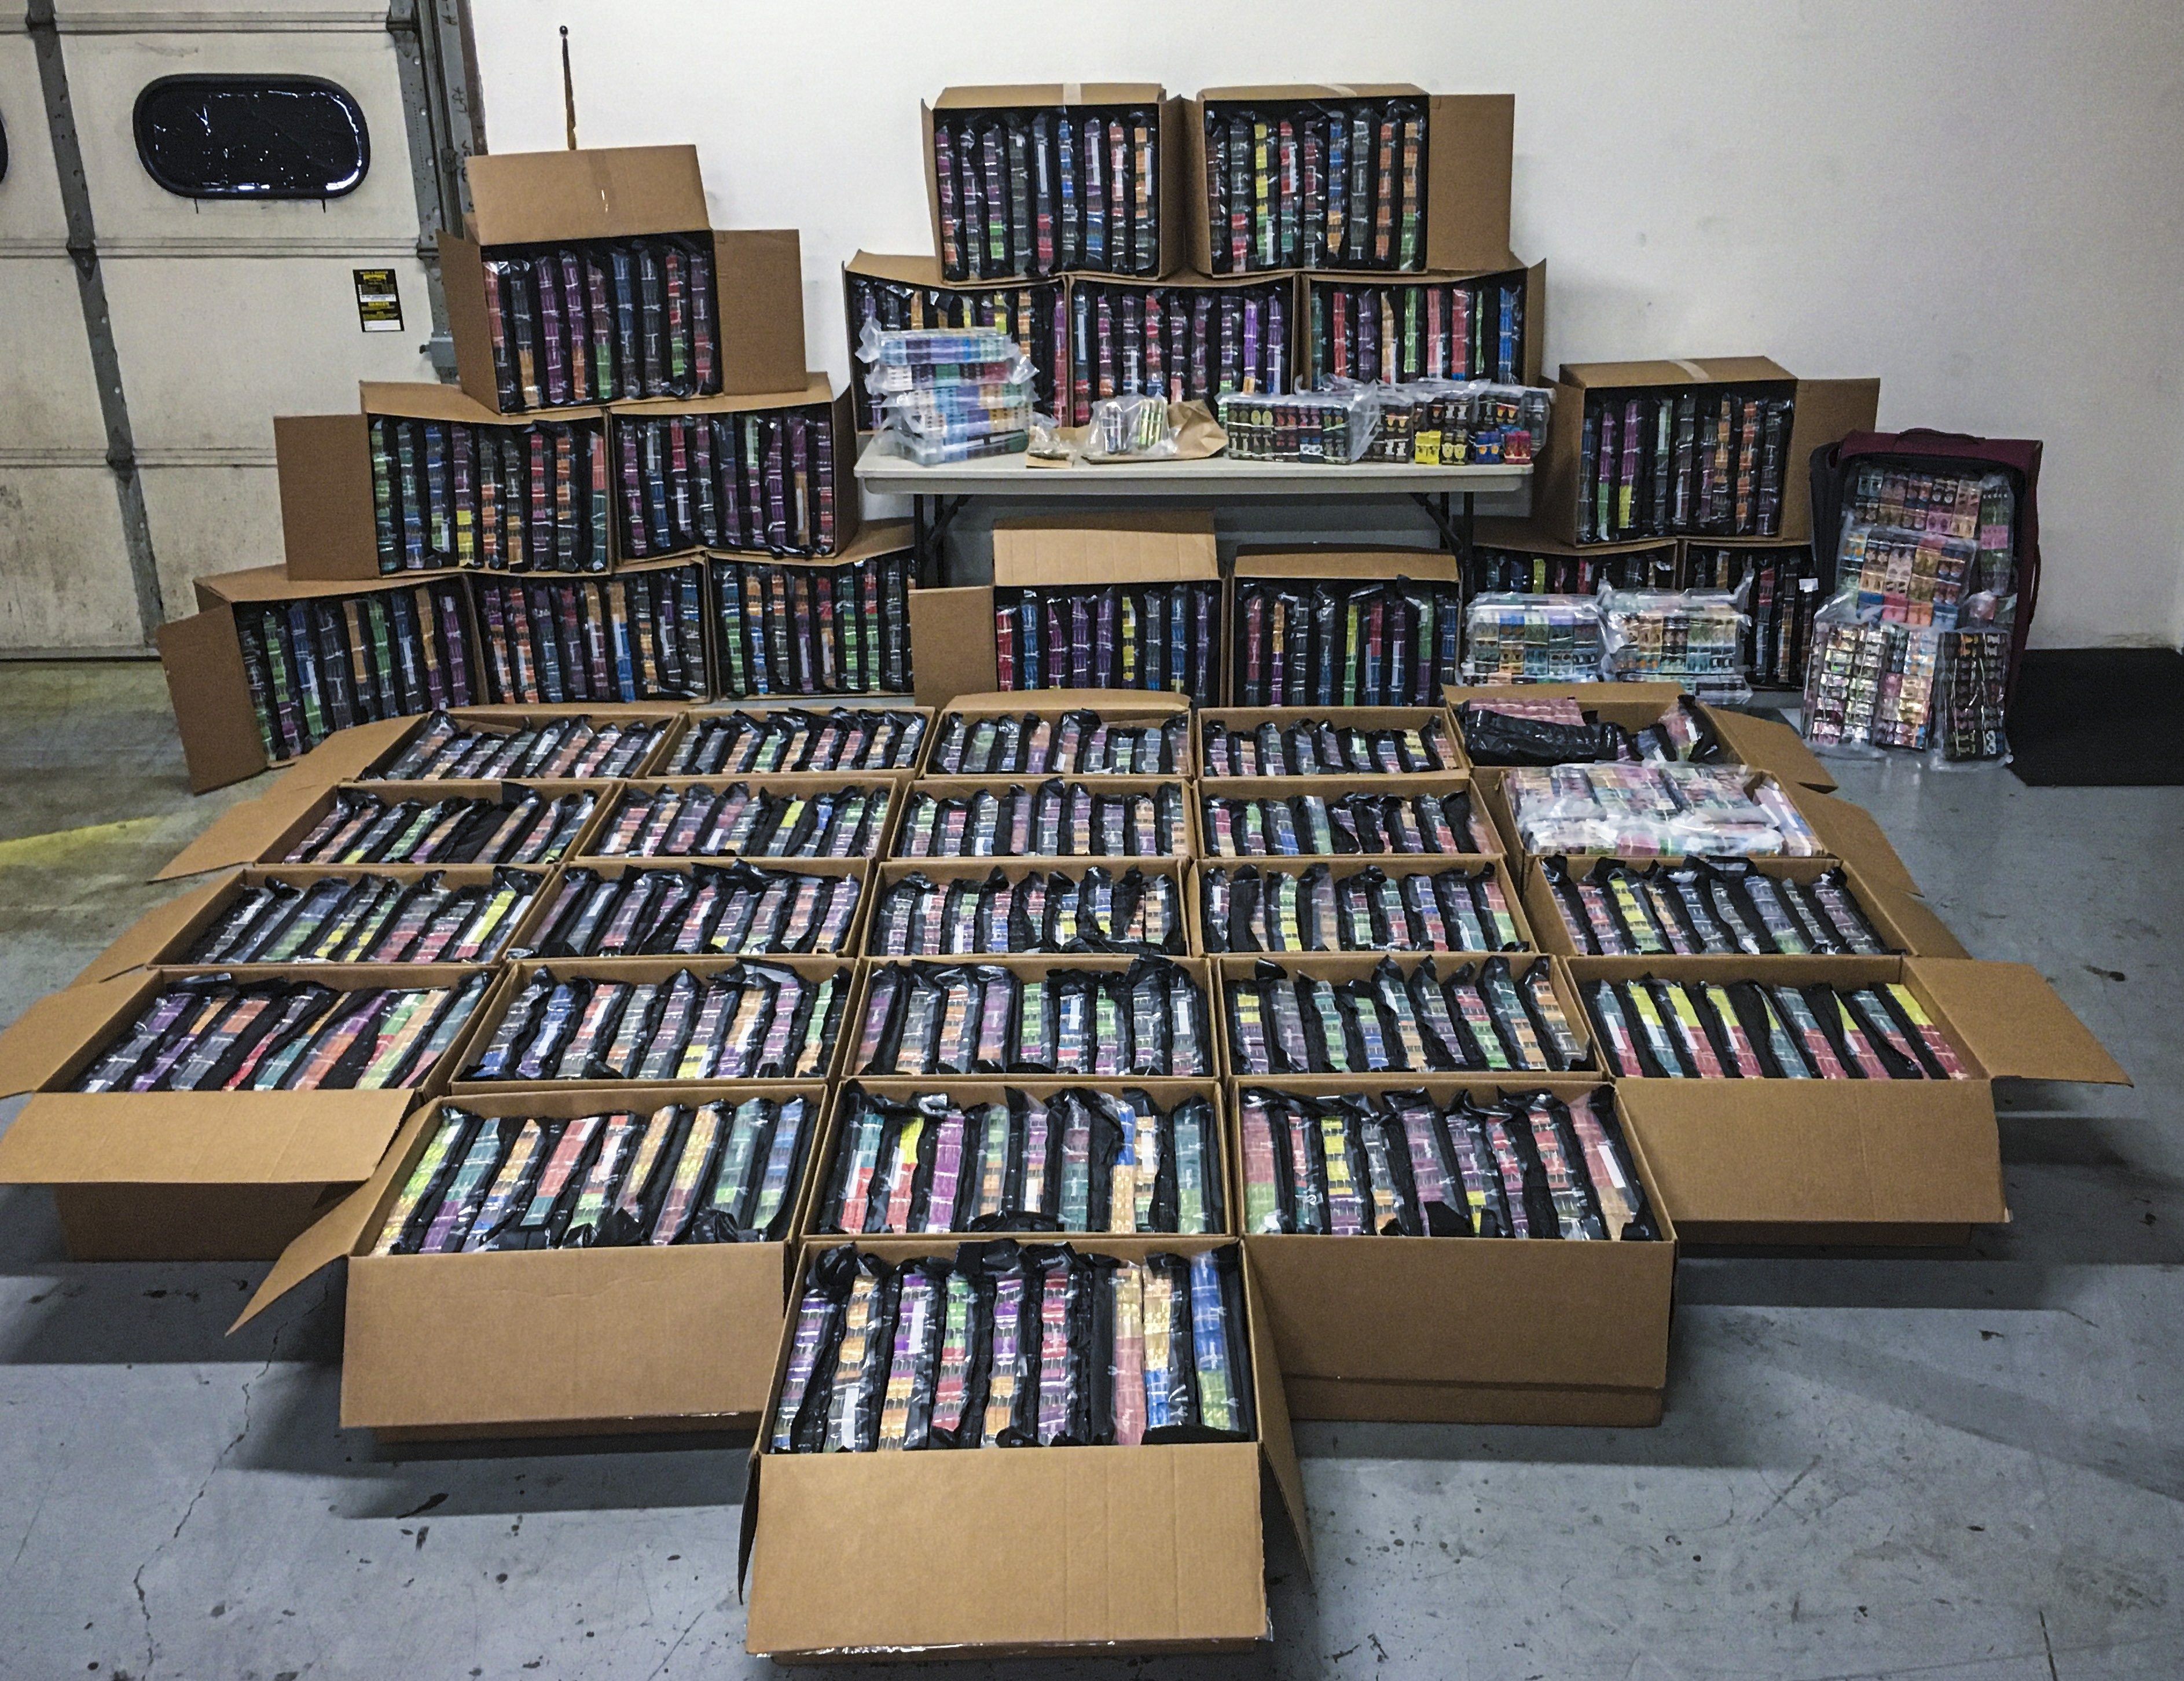 This photo provided Nov. 7, 2019 shows some of the 75,000 THC vaping cartridges seized in drug busts by Minnesota's Northwest Metro Drug Task Force.